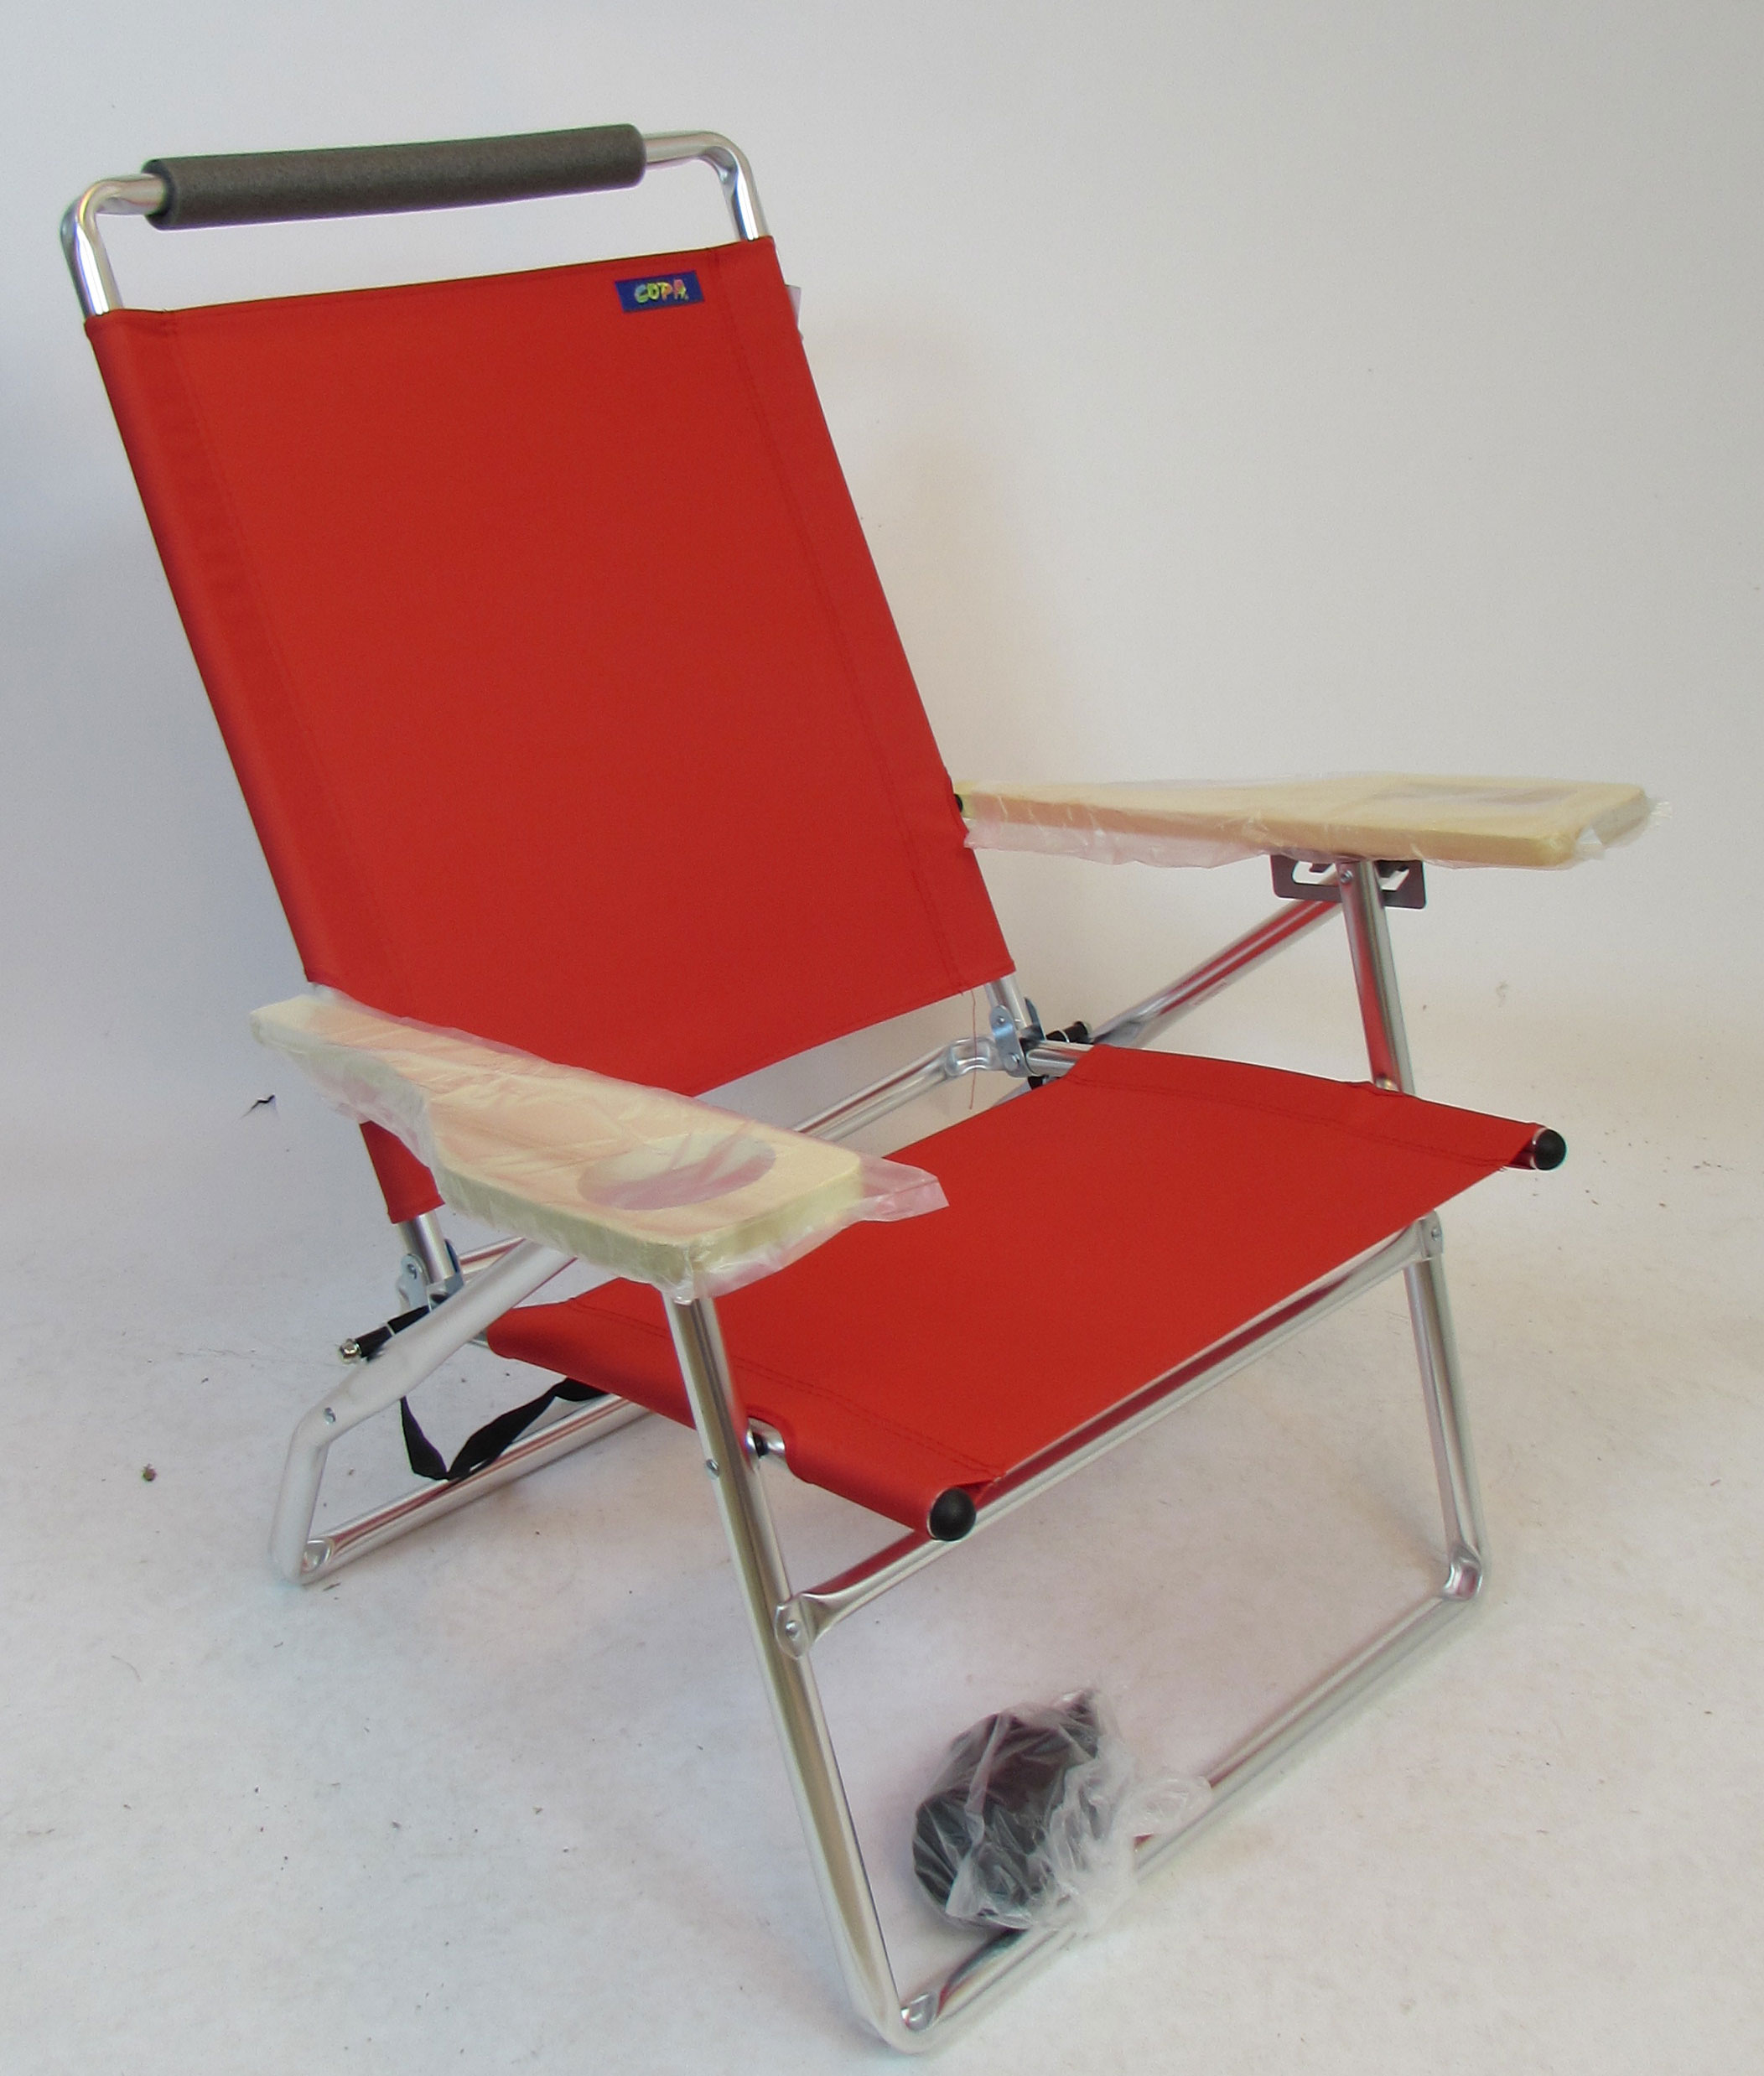 JGR Deluxe MID-Height Oversize Beach Chair